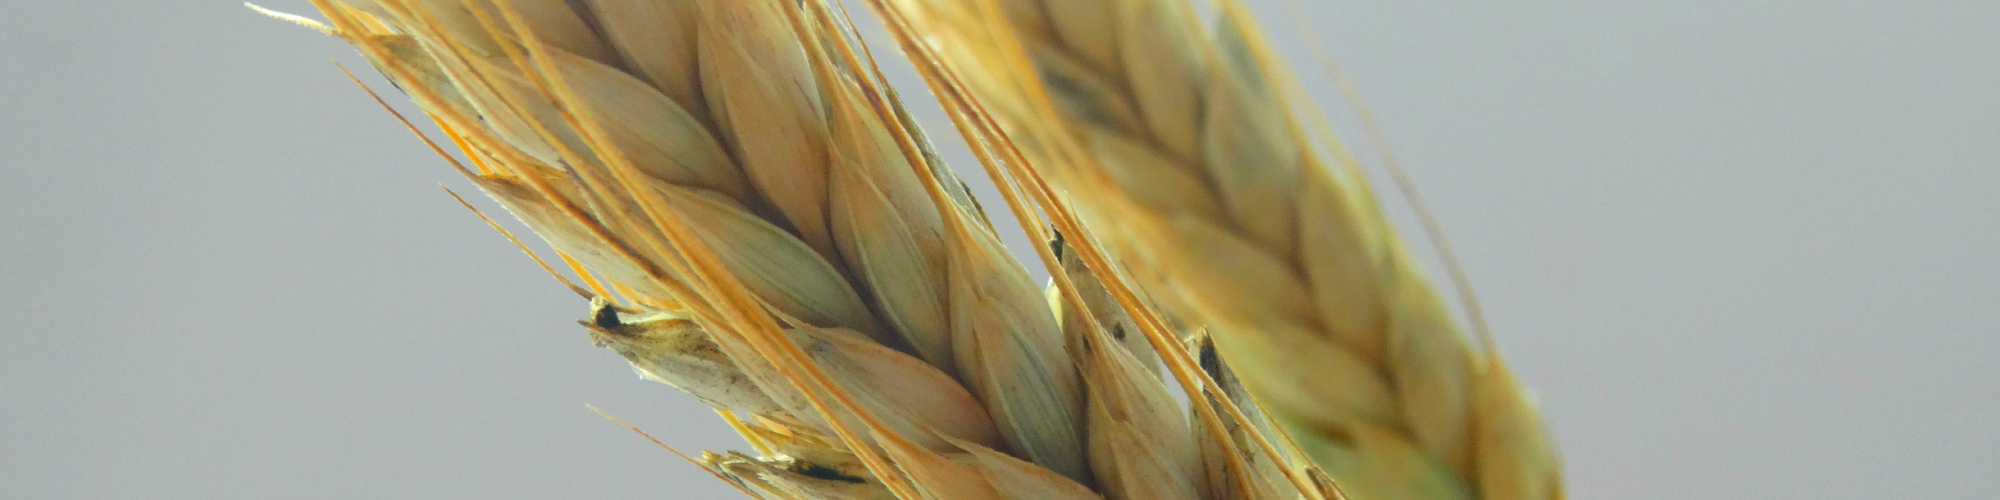 Eating whole grains led to modest improvements in gut microbiota and immune response